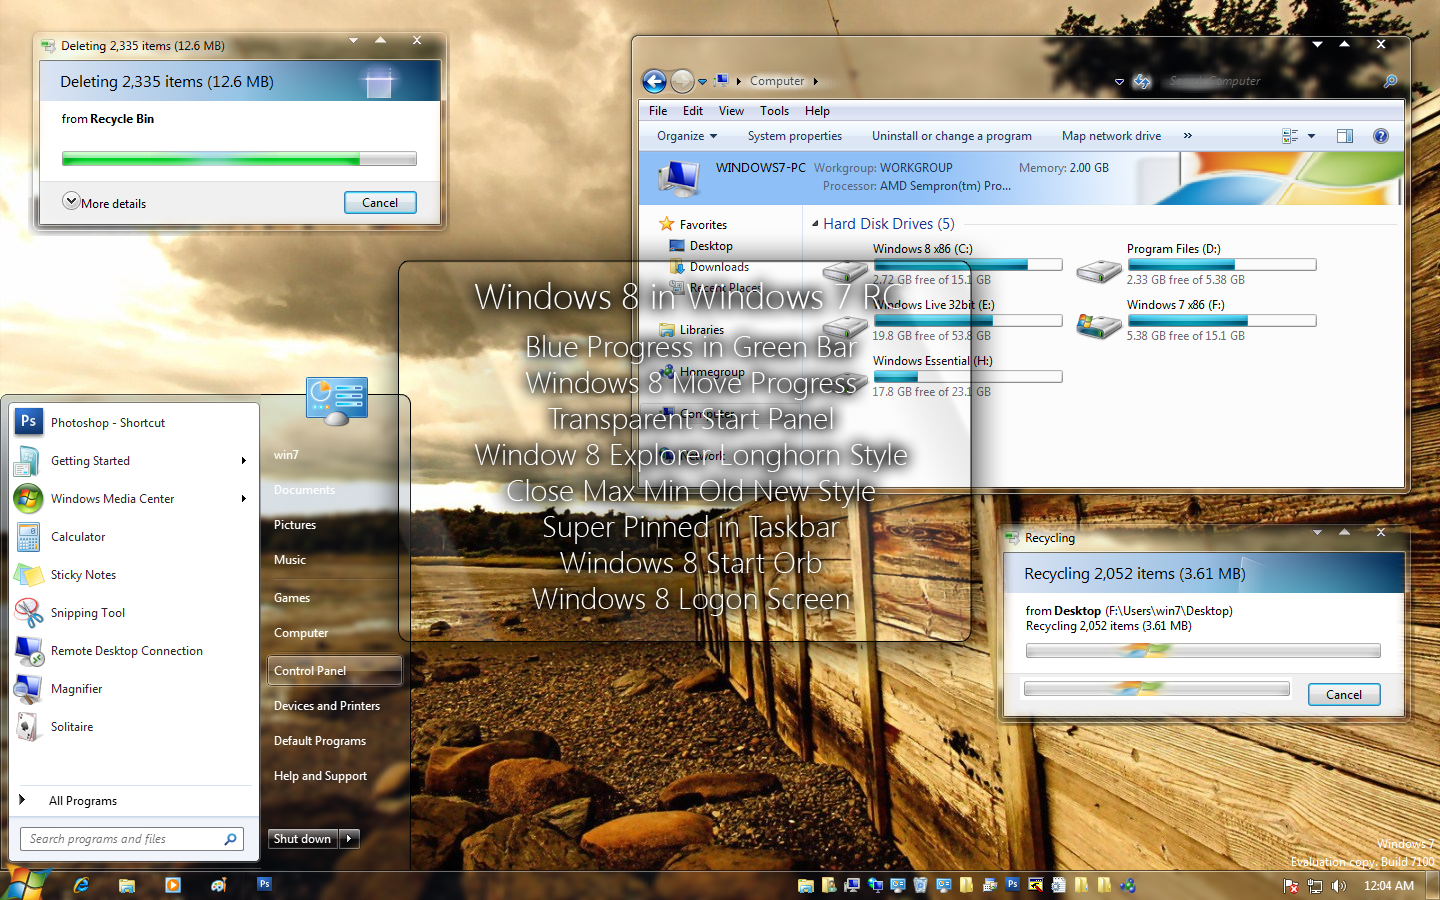 Windows 8 themes in Windows 7 by mufflerexoz